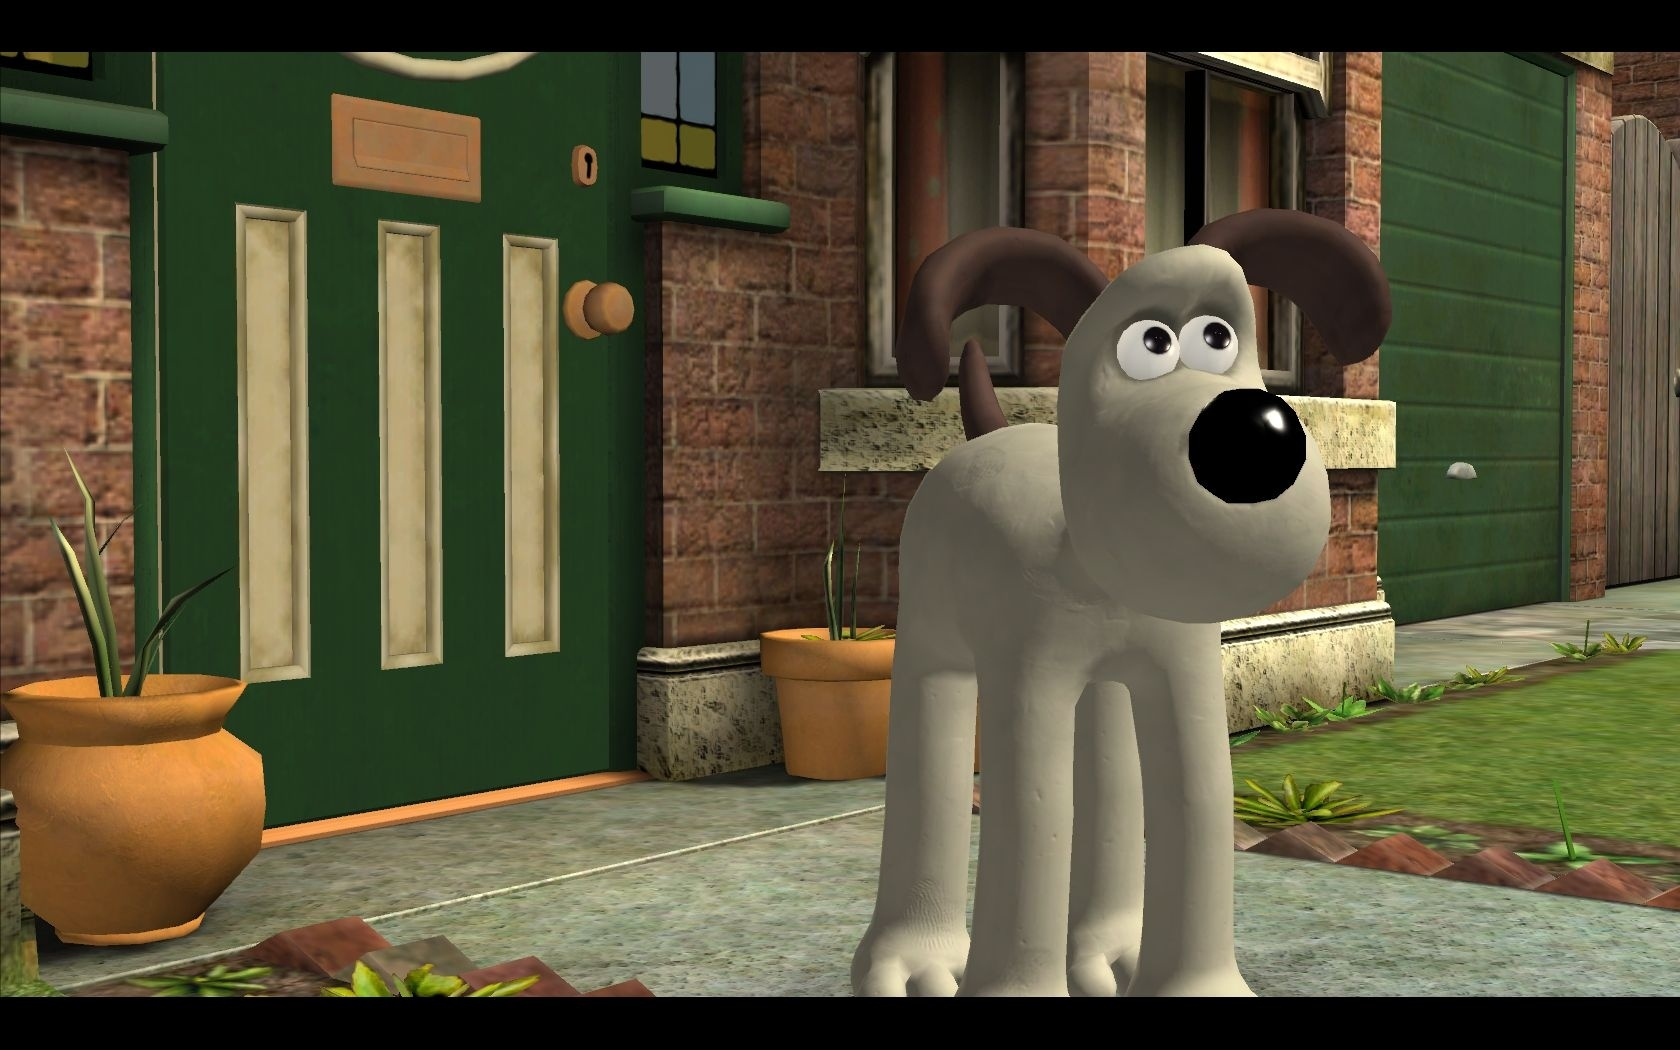 Wallace and Gromit Hummelfluch2